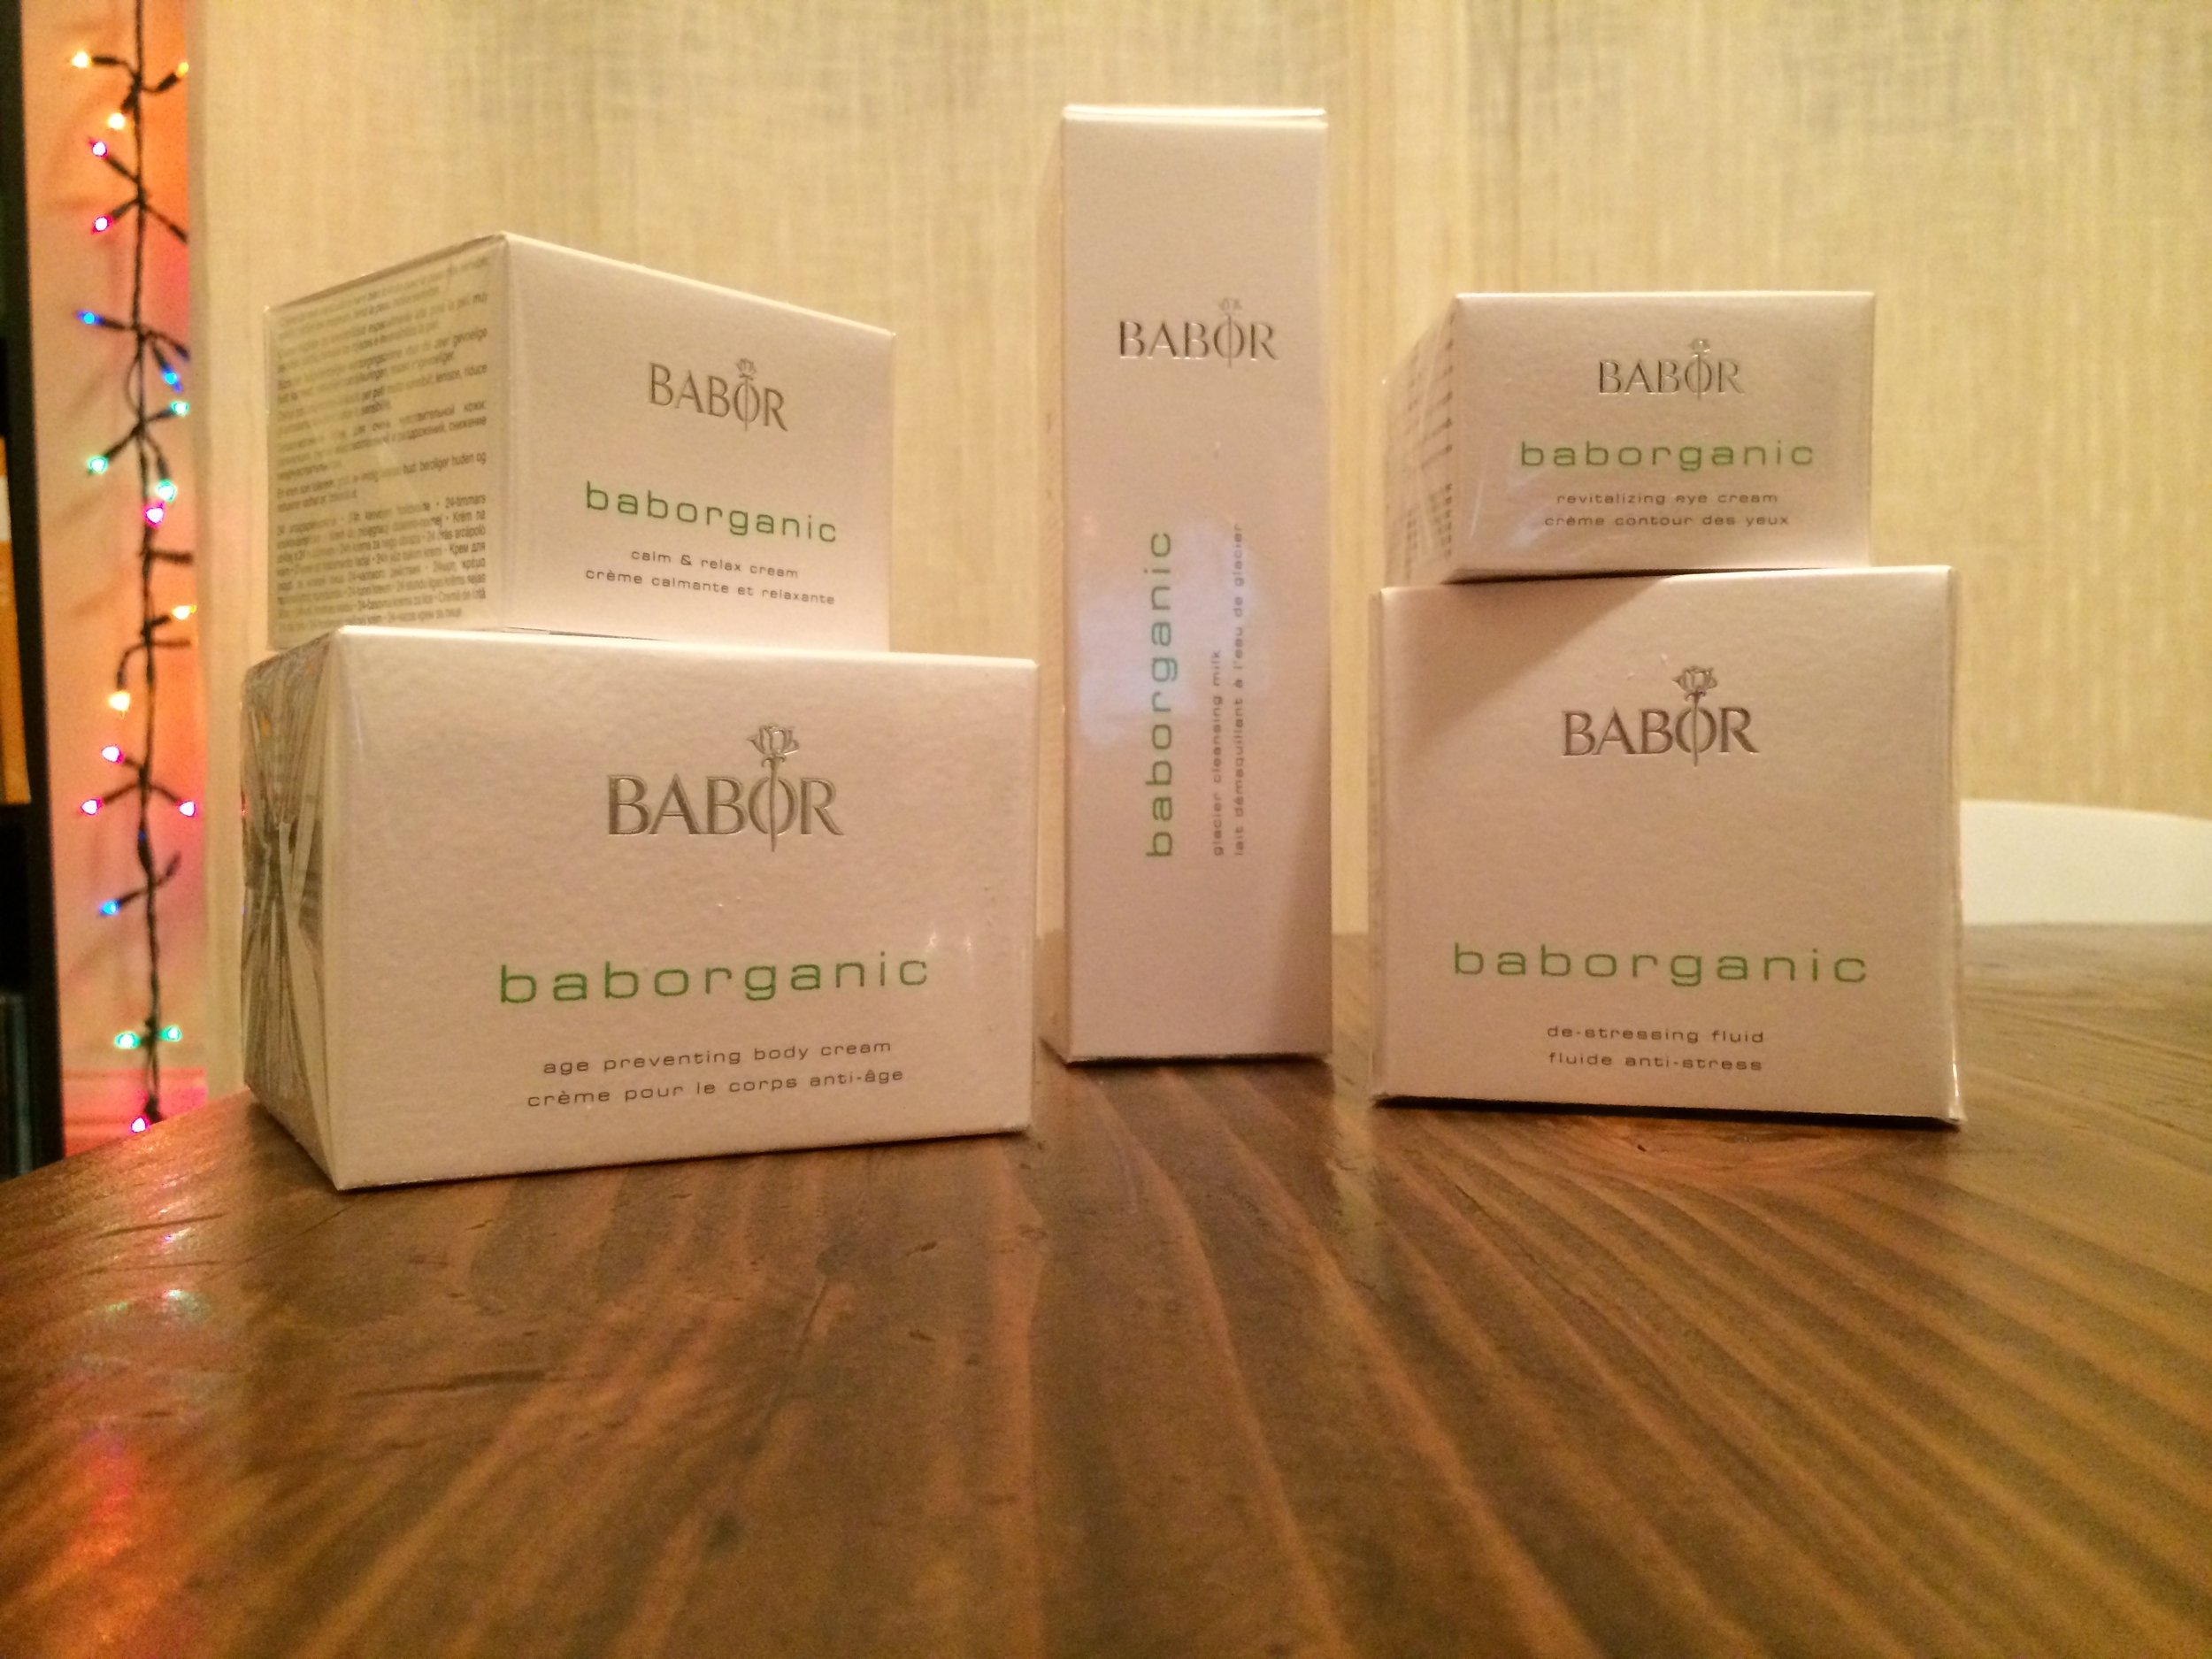 Christmas came early with Babor's Green Glamor Line: Baborganic.